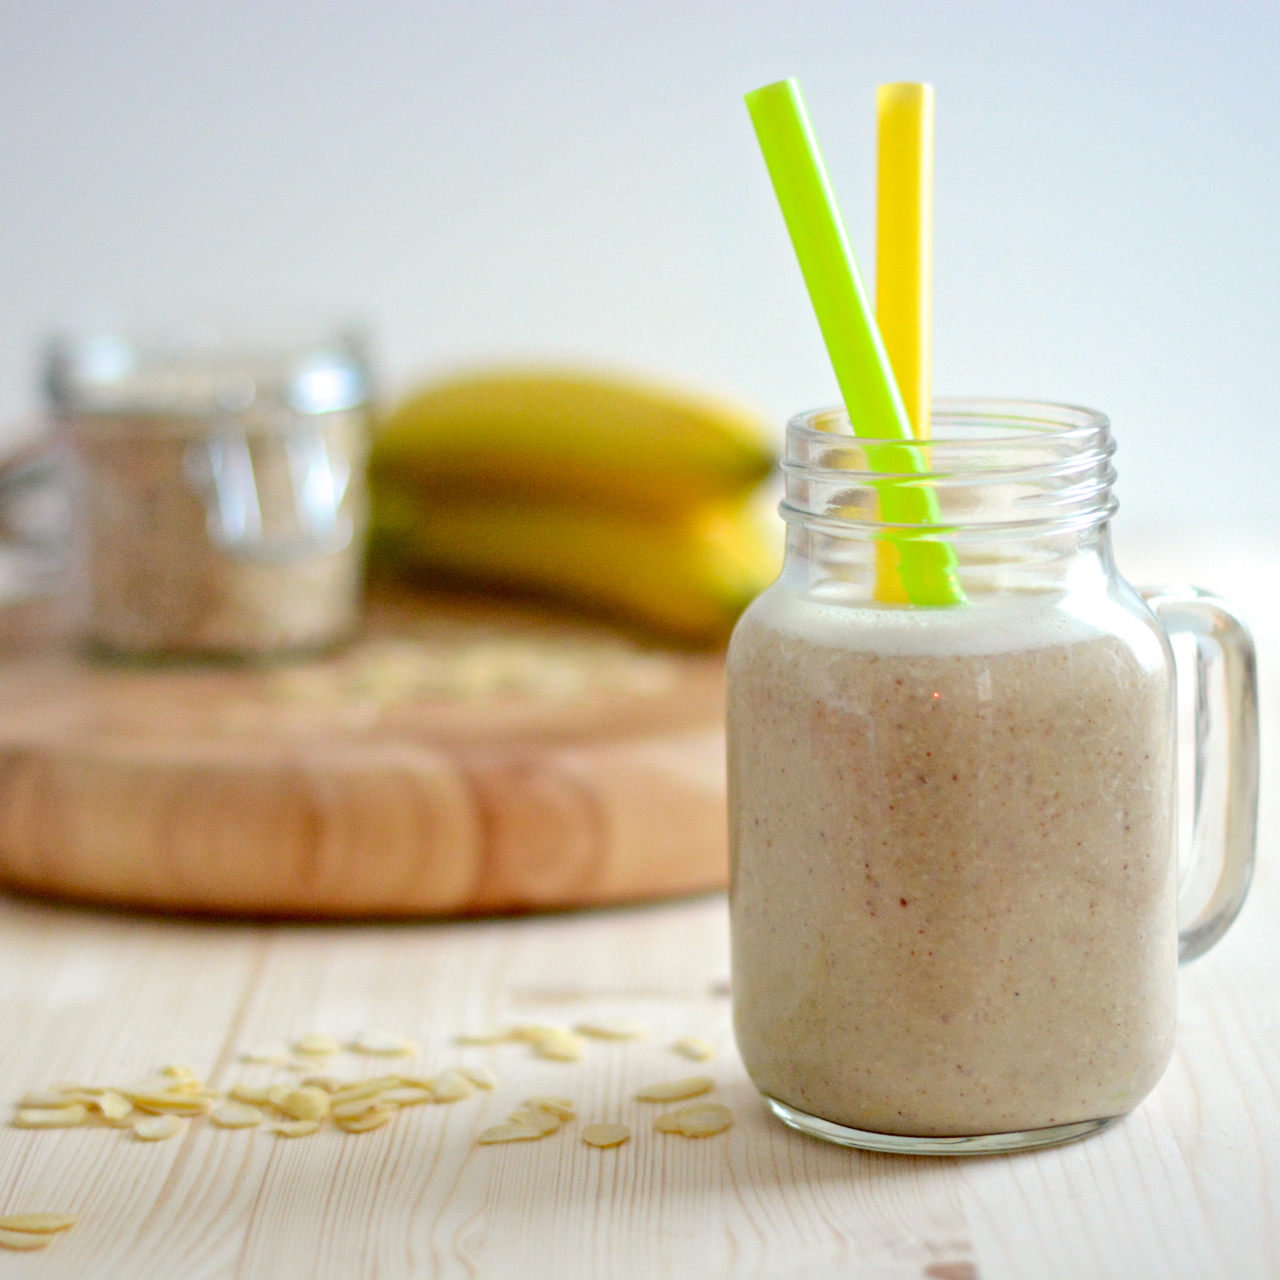 Banana and Almond Breakfast Smoothie - My Recipe Book